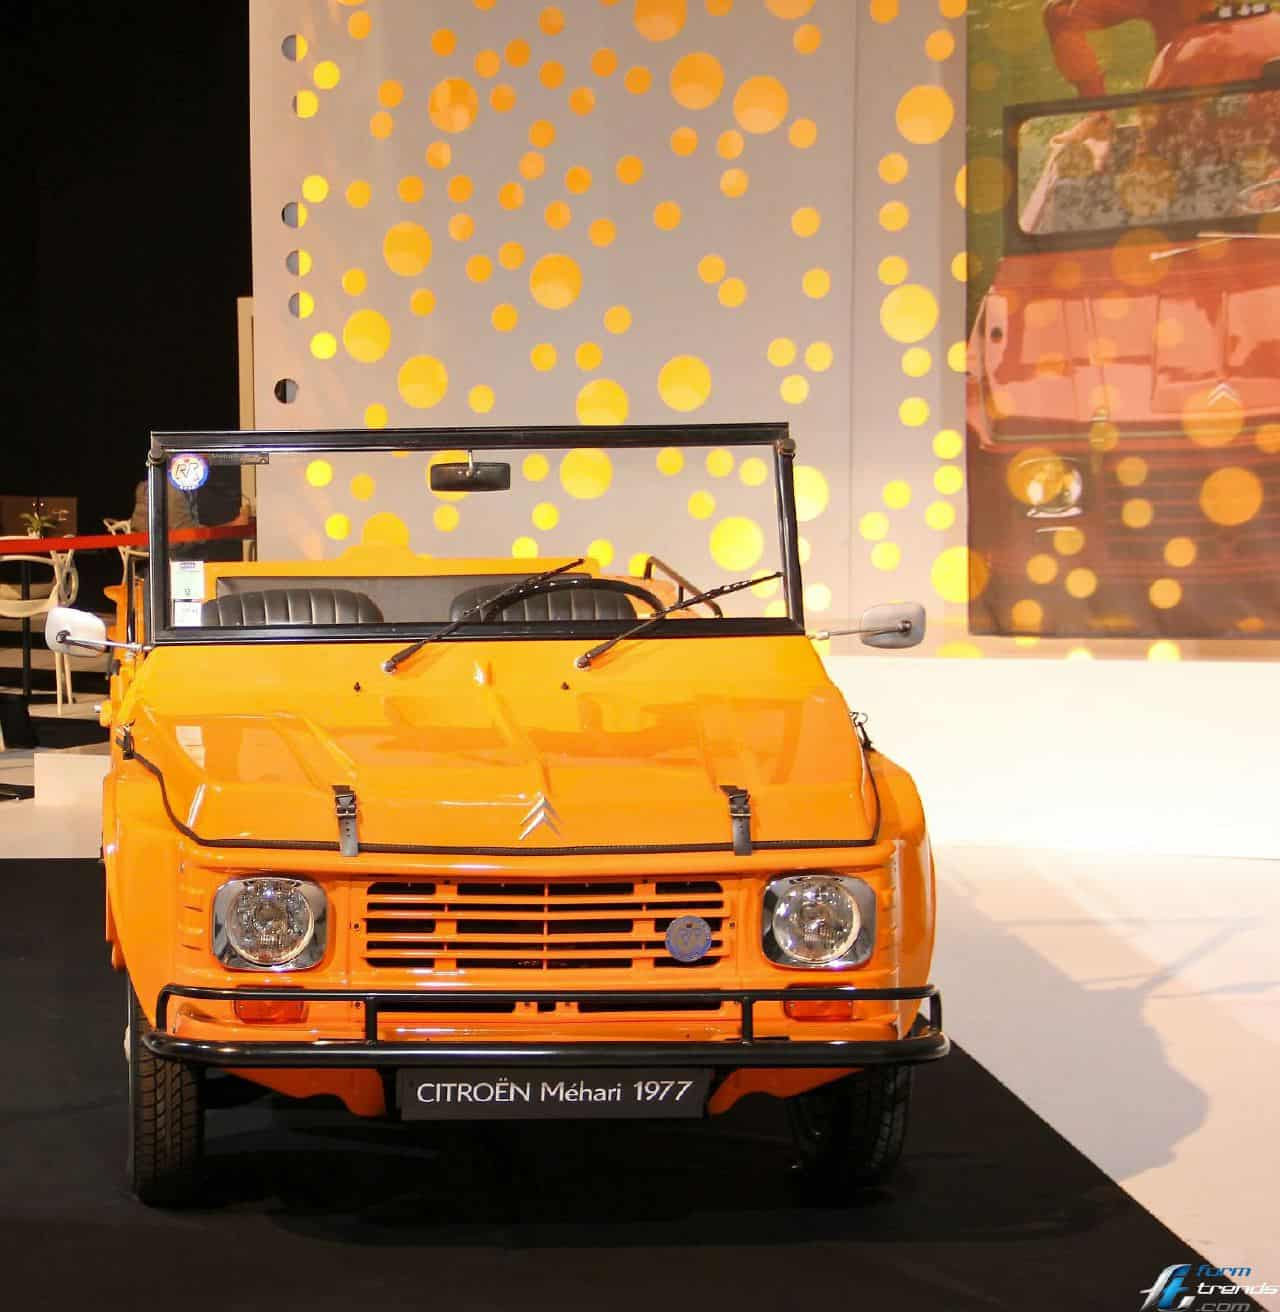 Lautomobile Et La Mode Exhibition Head Lamp Colt 120 Ss Citroen Mehari 1977